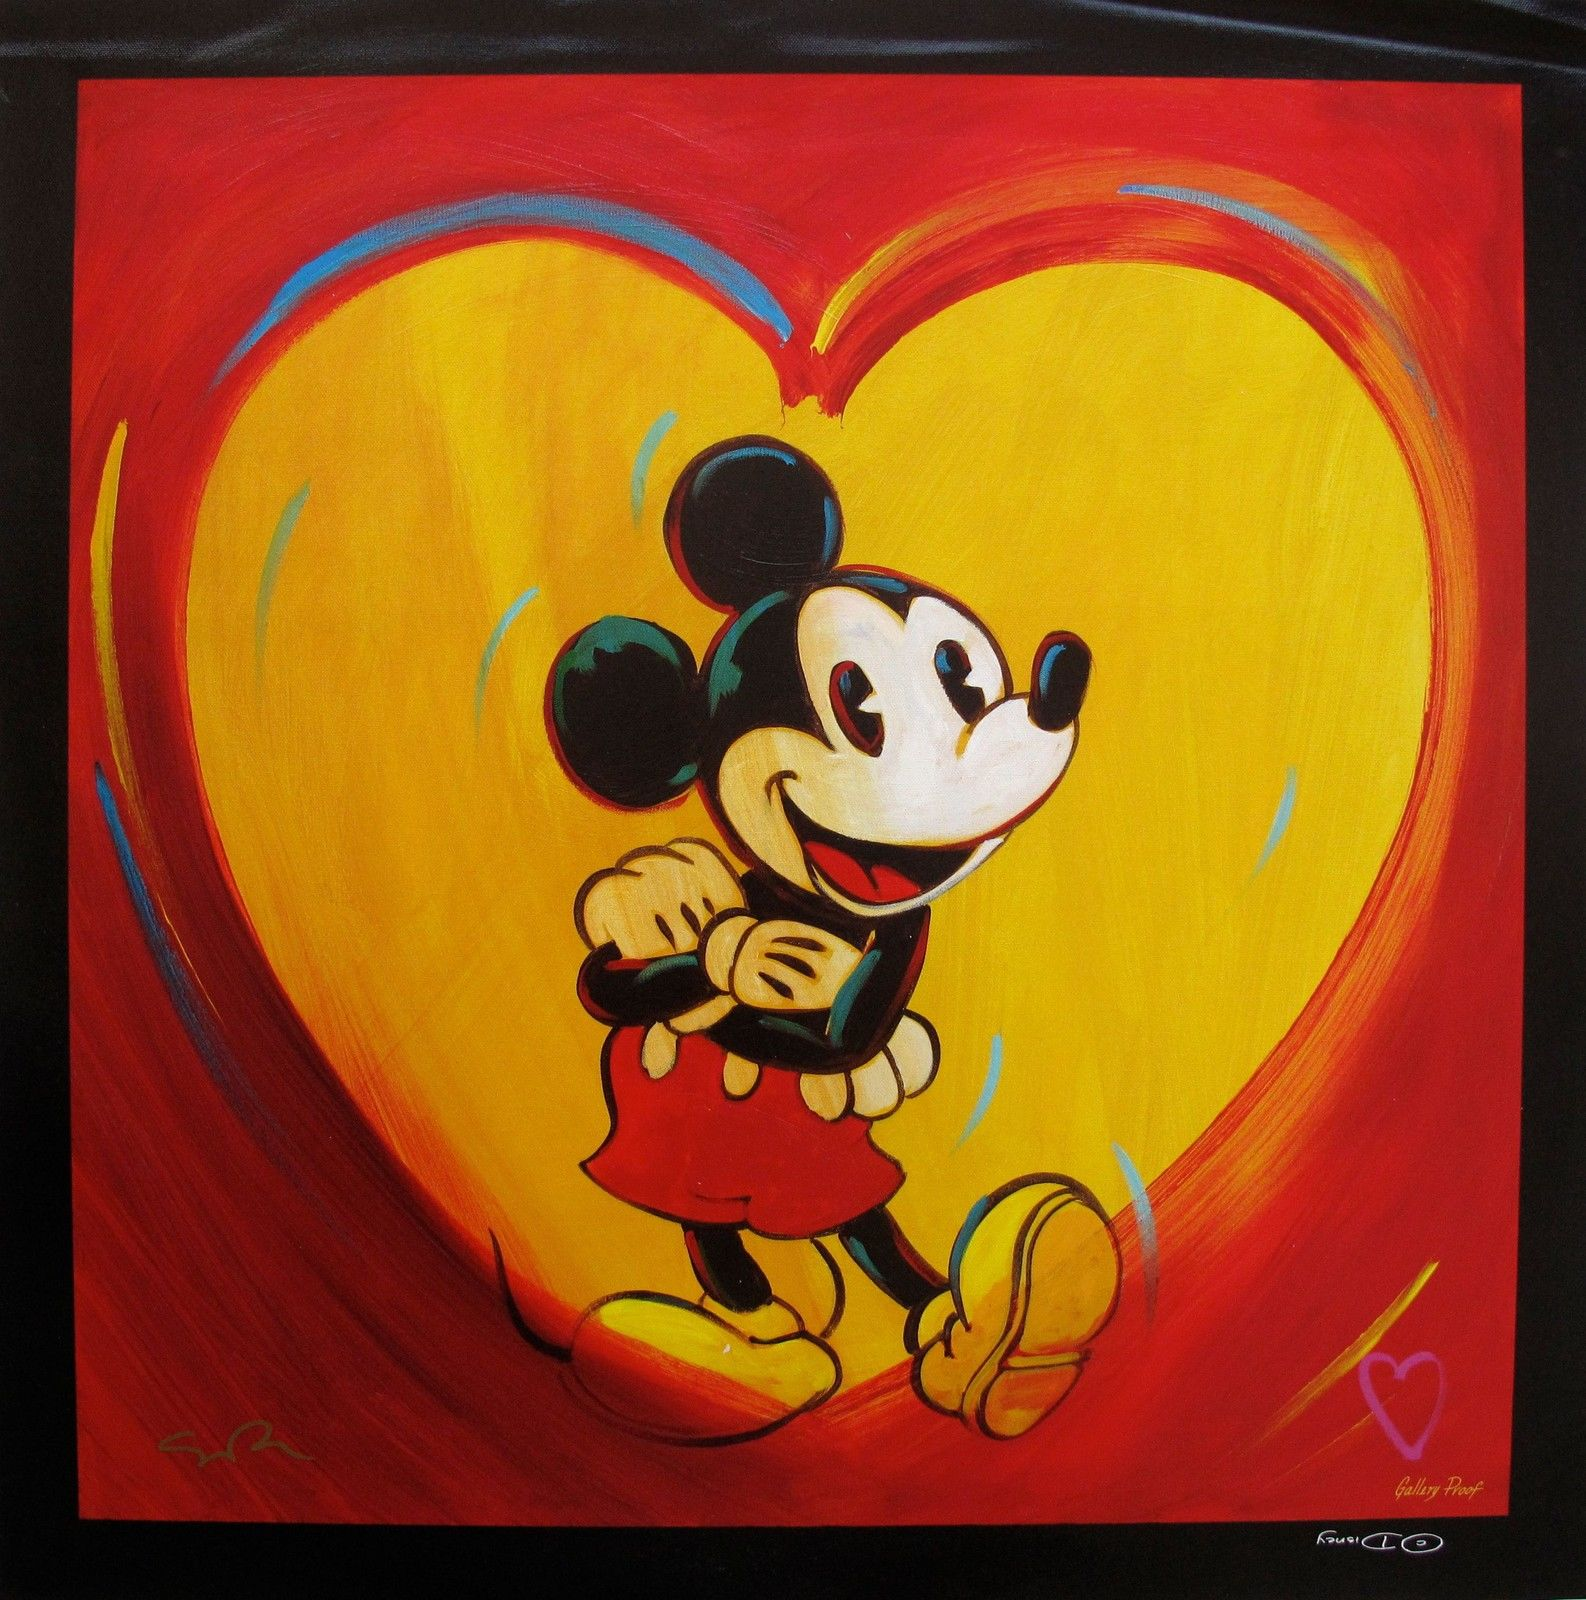 SIMON BULL I HEART MICKEY MOUSE Hand Signed Giclee on Canvas